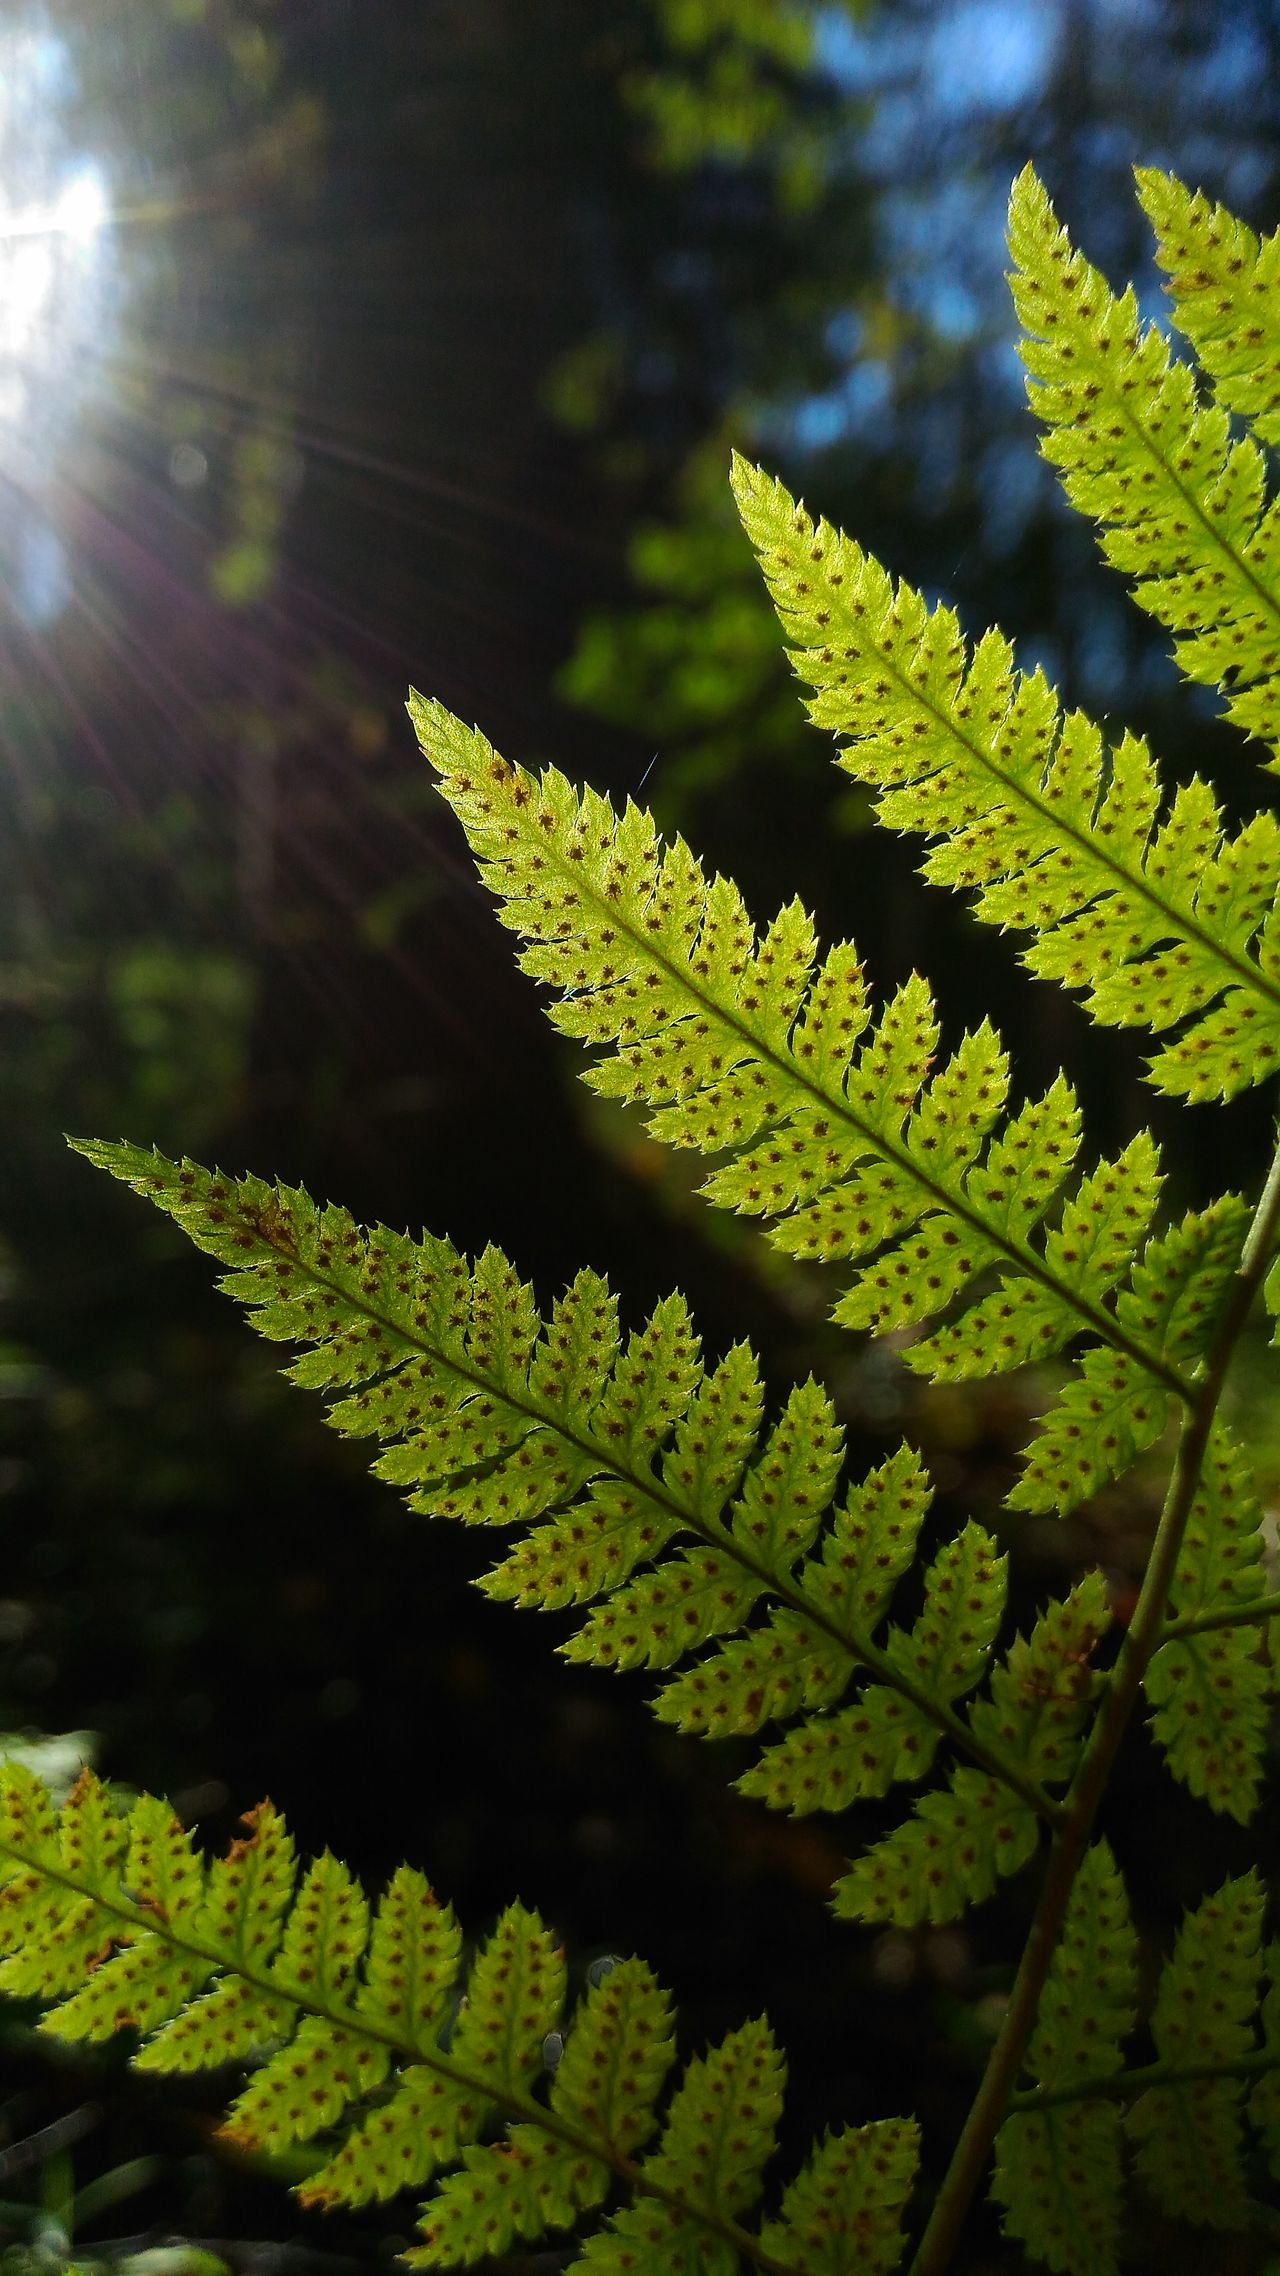 Green Color Leaf Nature Beauty In Nature Freshness Leaf Vein Outdoors Botany Green WoodLand Fern Naturelovers Sunny папоротник Zenphotography Zenfone2laser Ze601kl Intheforest